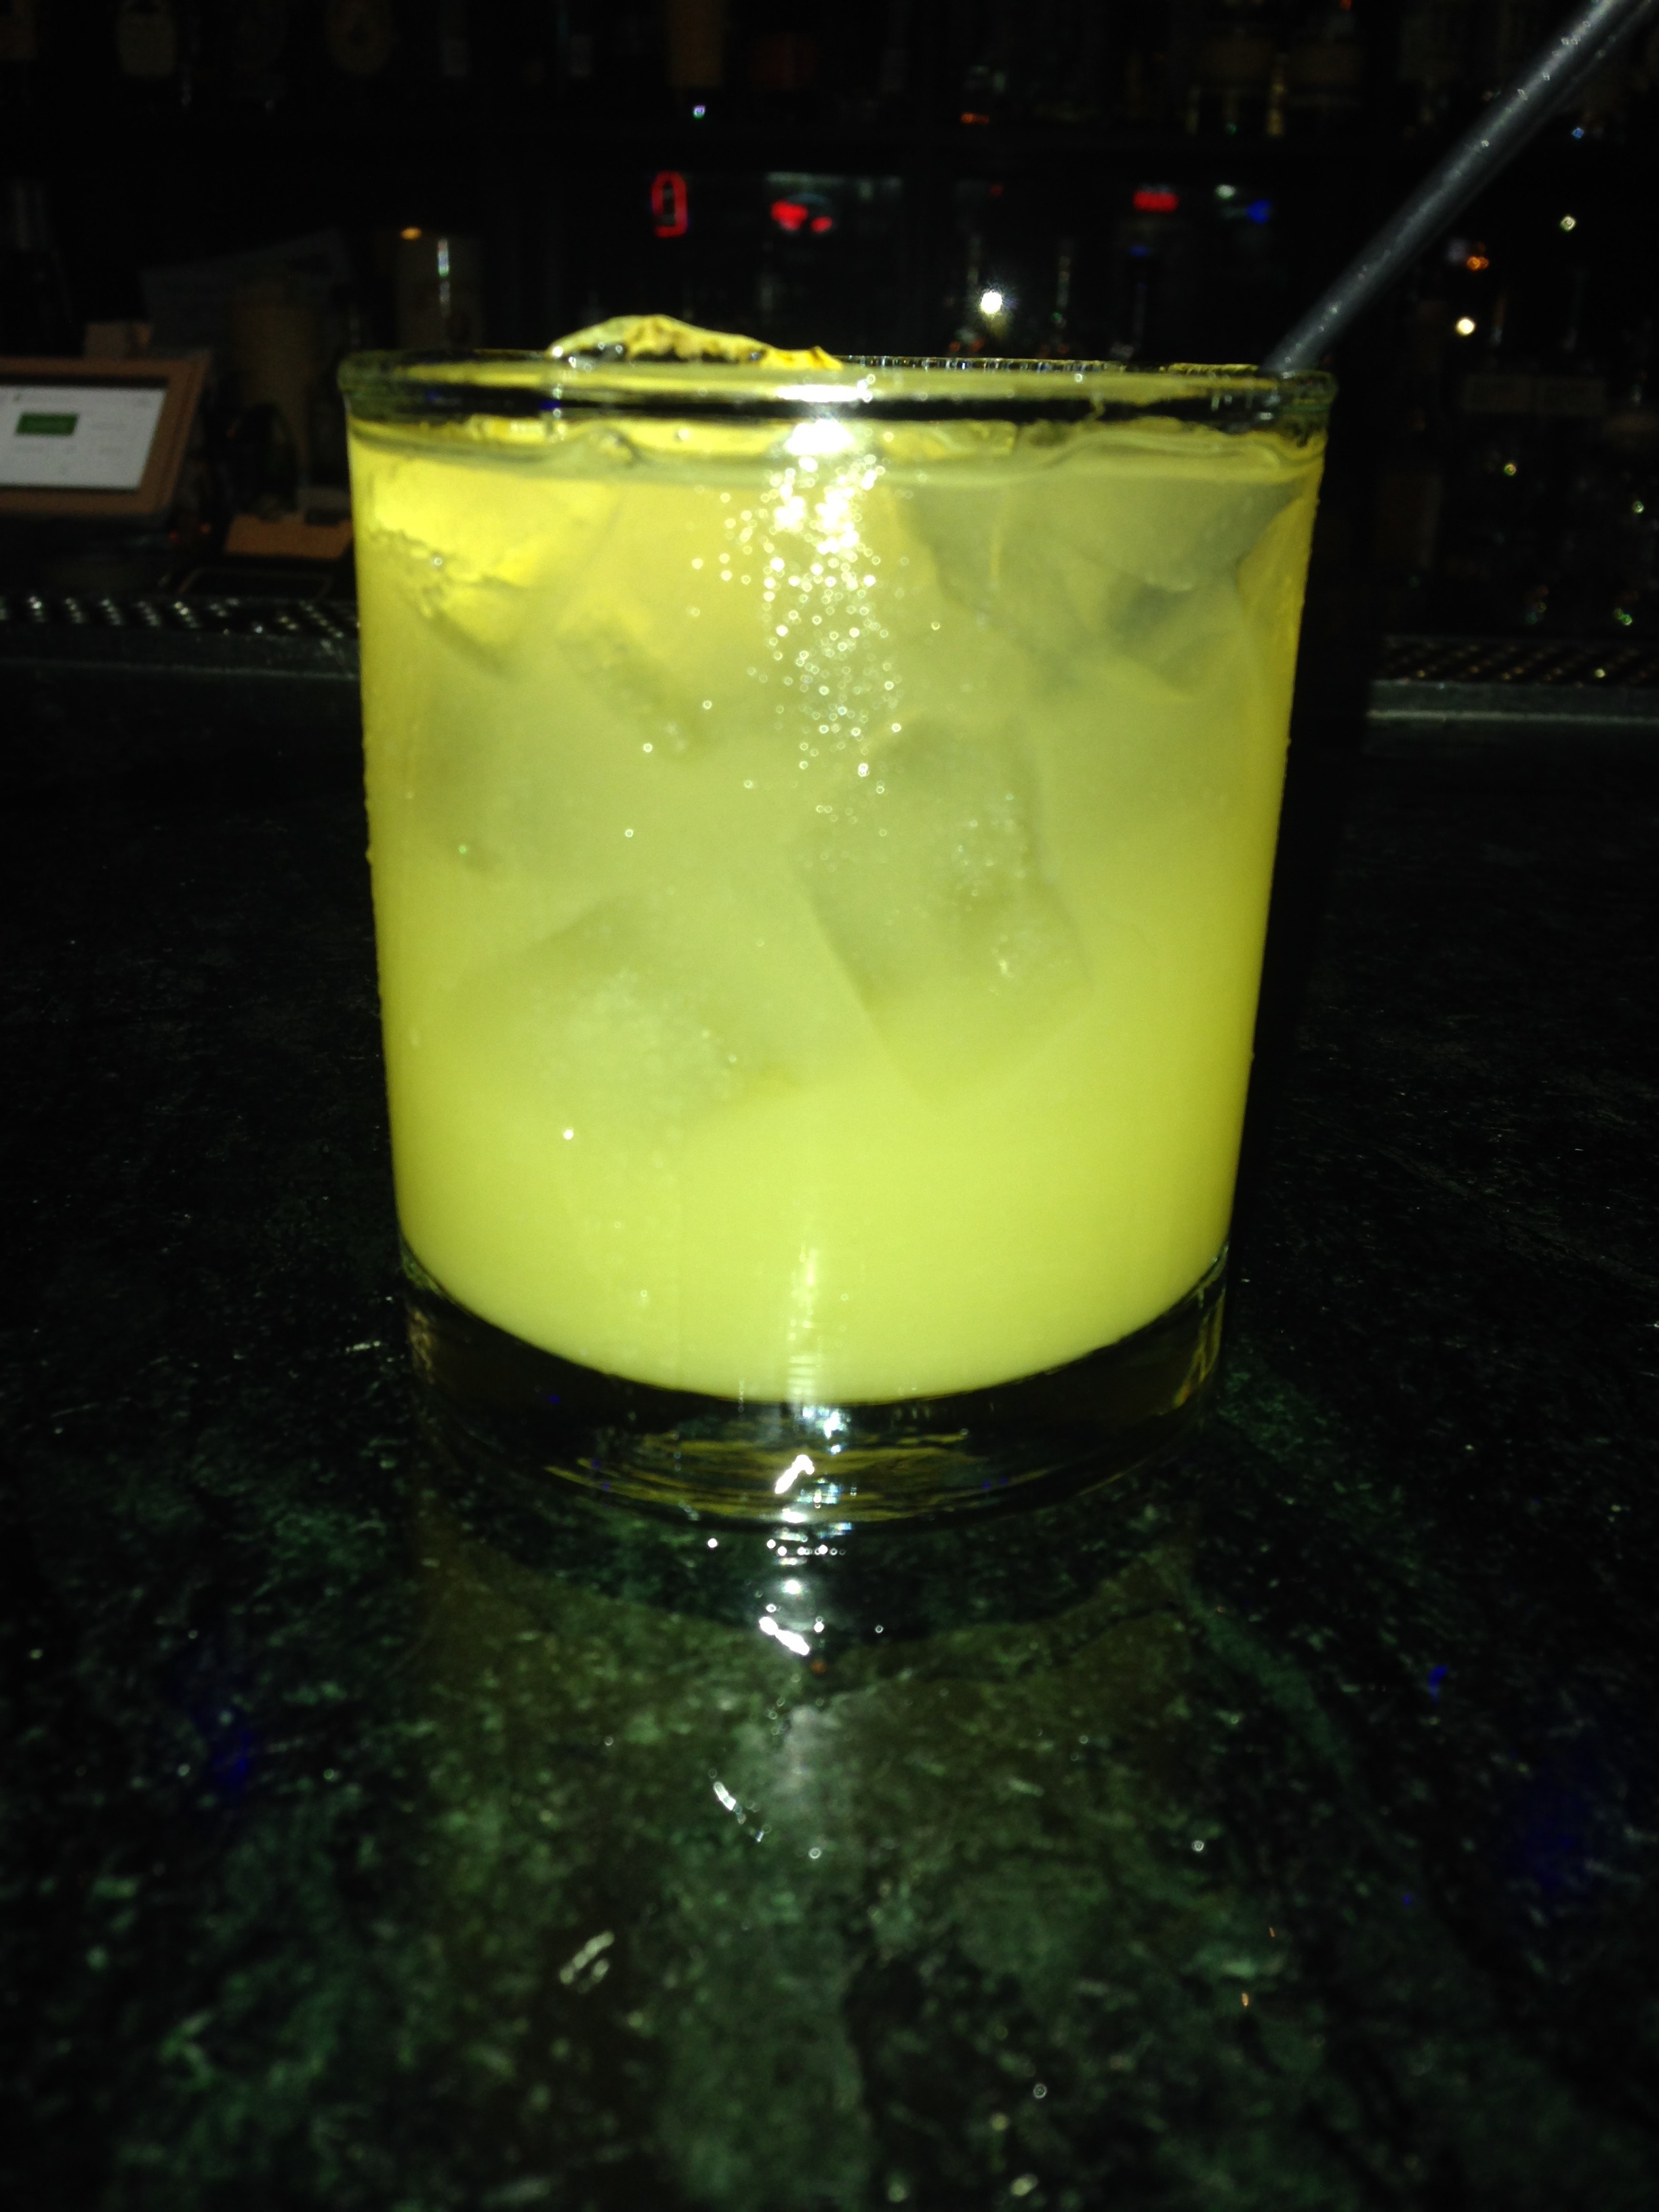 Why did I take a picture of this rum and pineapple juice? Only my blood alcohol content could tell.